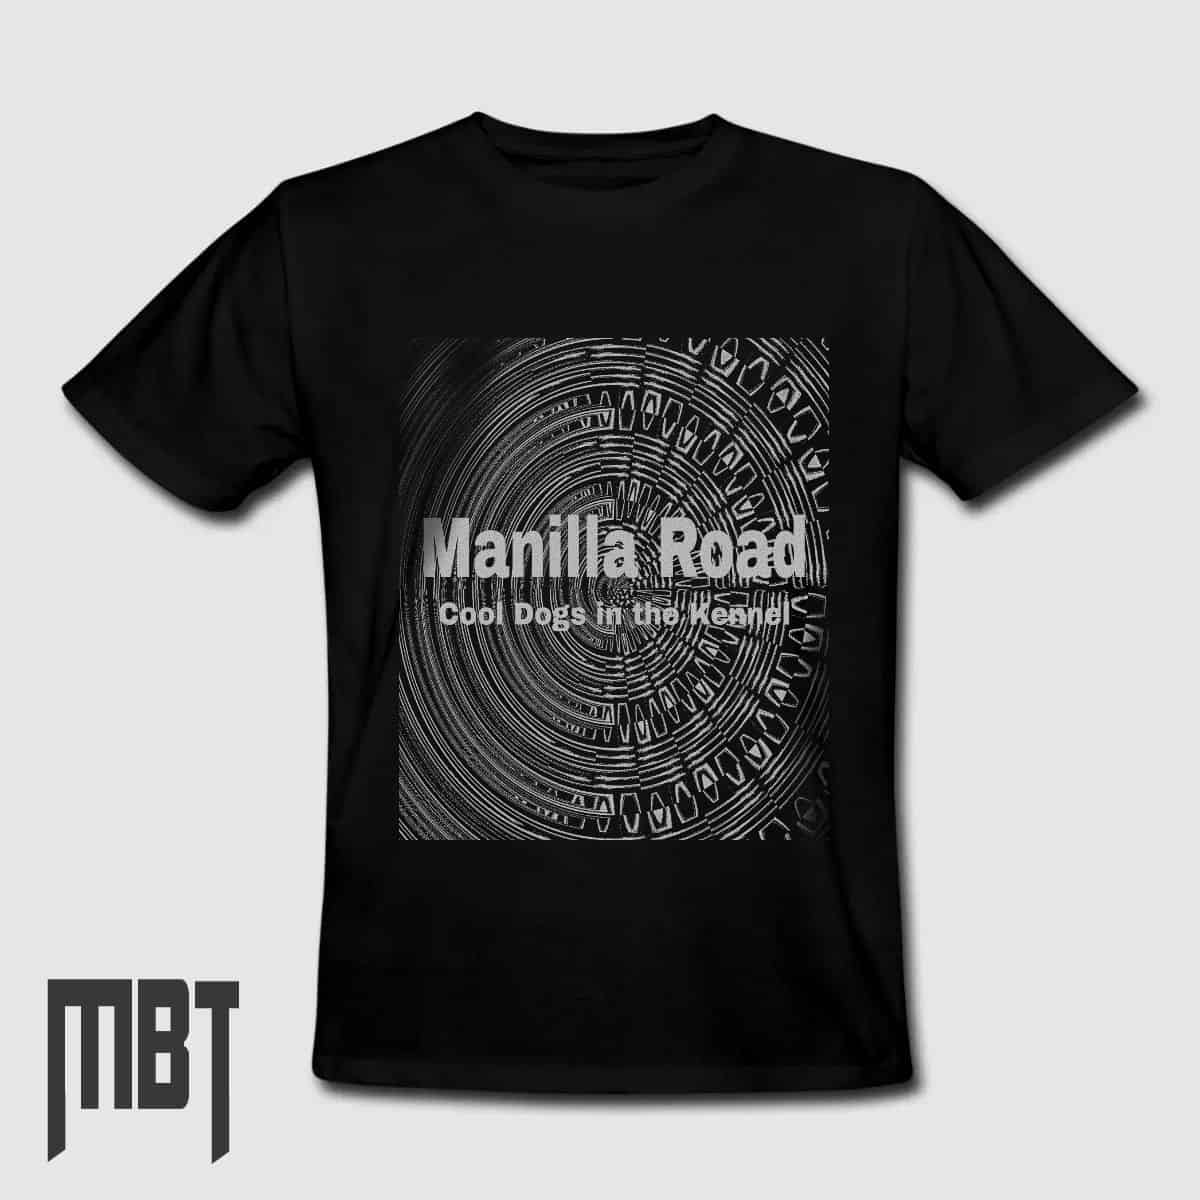 58029eb17064 Manilla Road T-Shirt, Manilla Road Cool Dogs In The Kennel Tee-Shirt ...